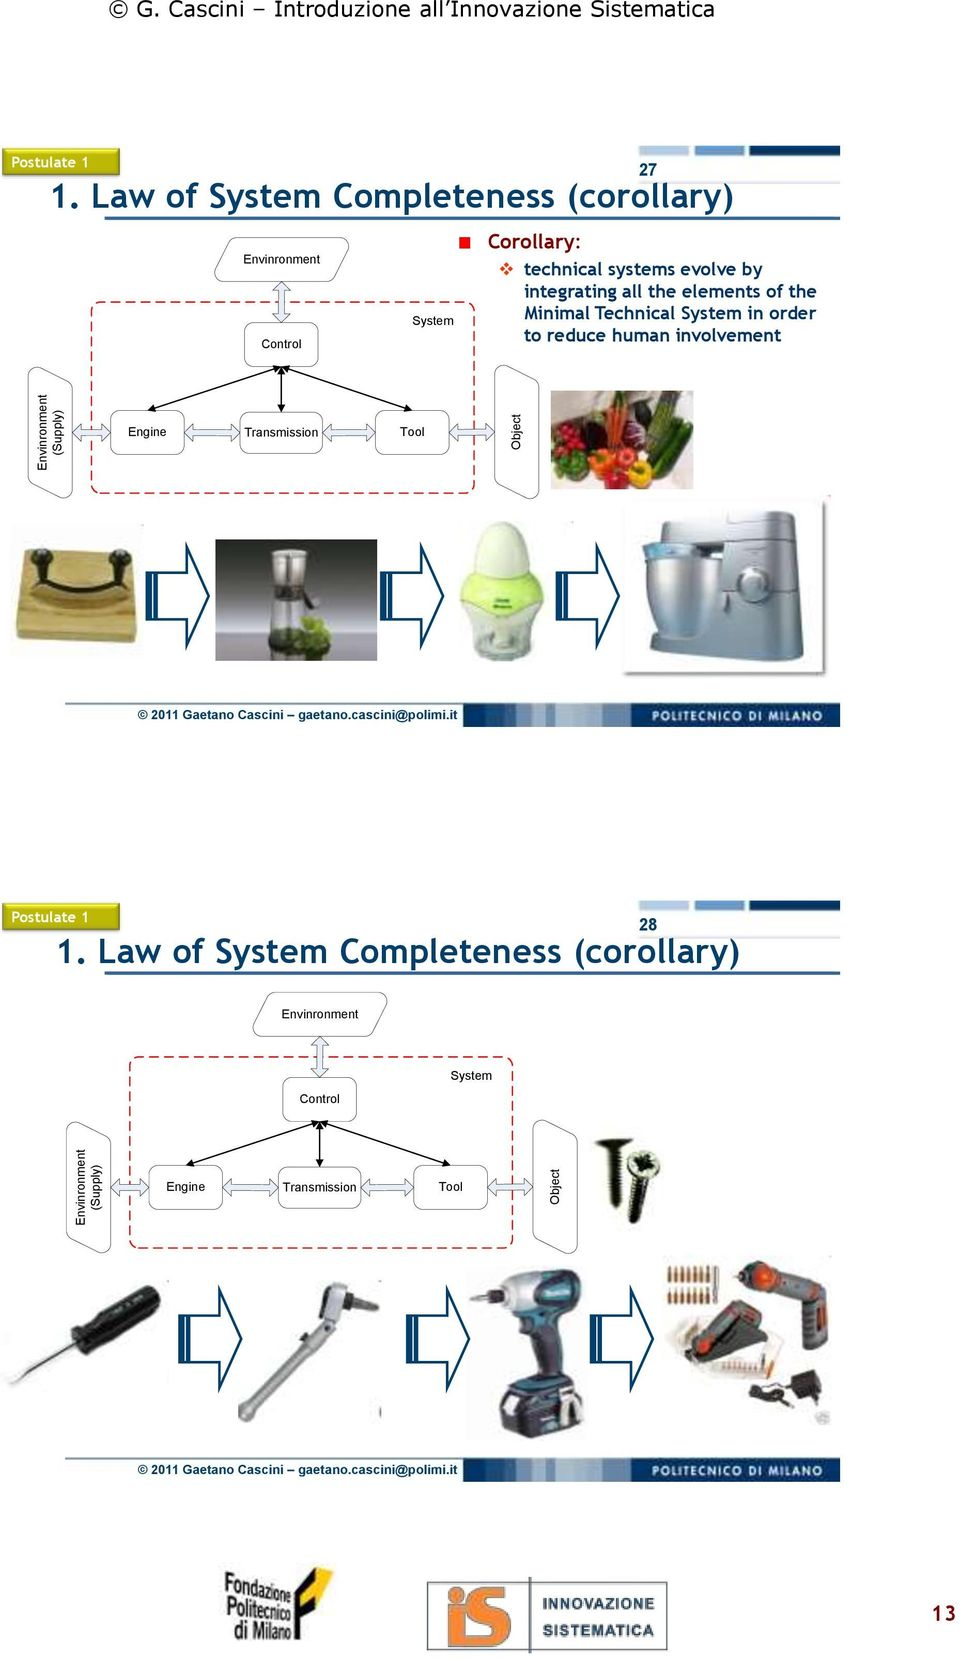 by integrating all the elements of the Minimal Technical System in order to reduce human involvement